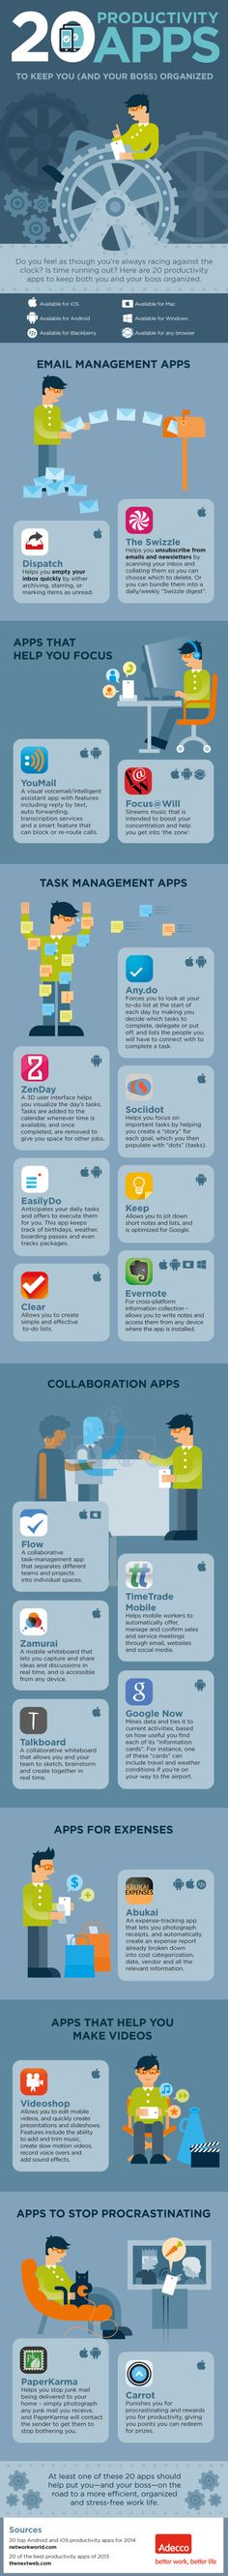 20 Productivity Apps to Keep You On Task